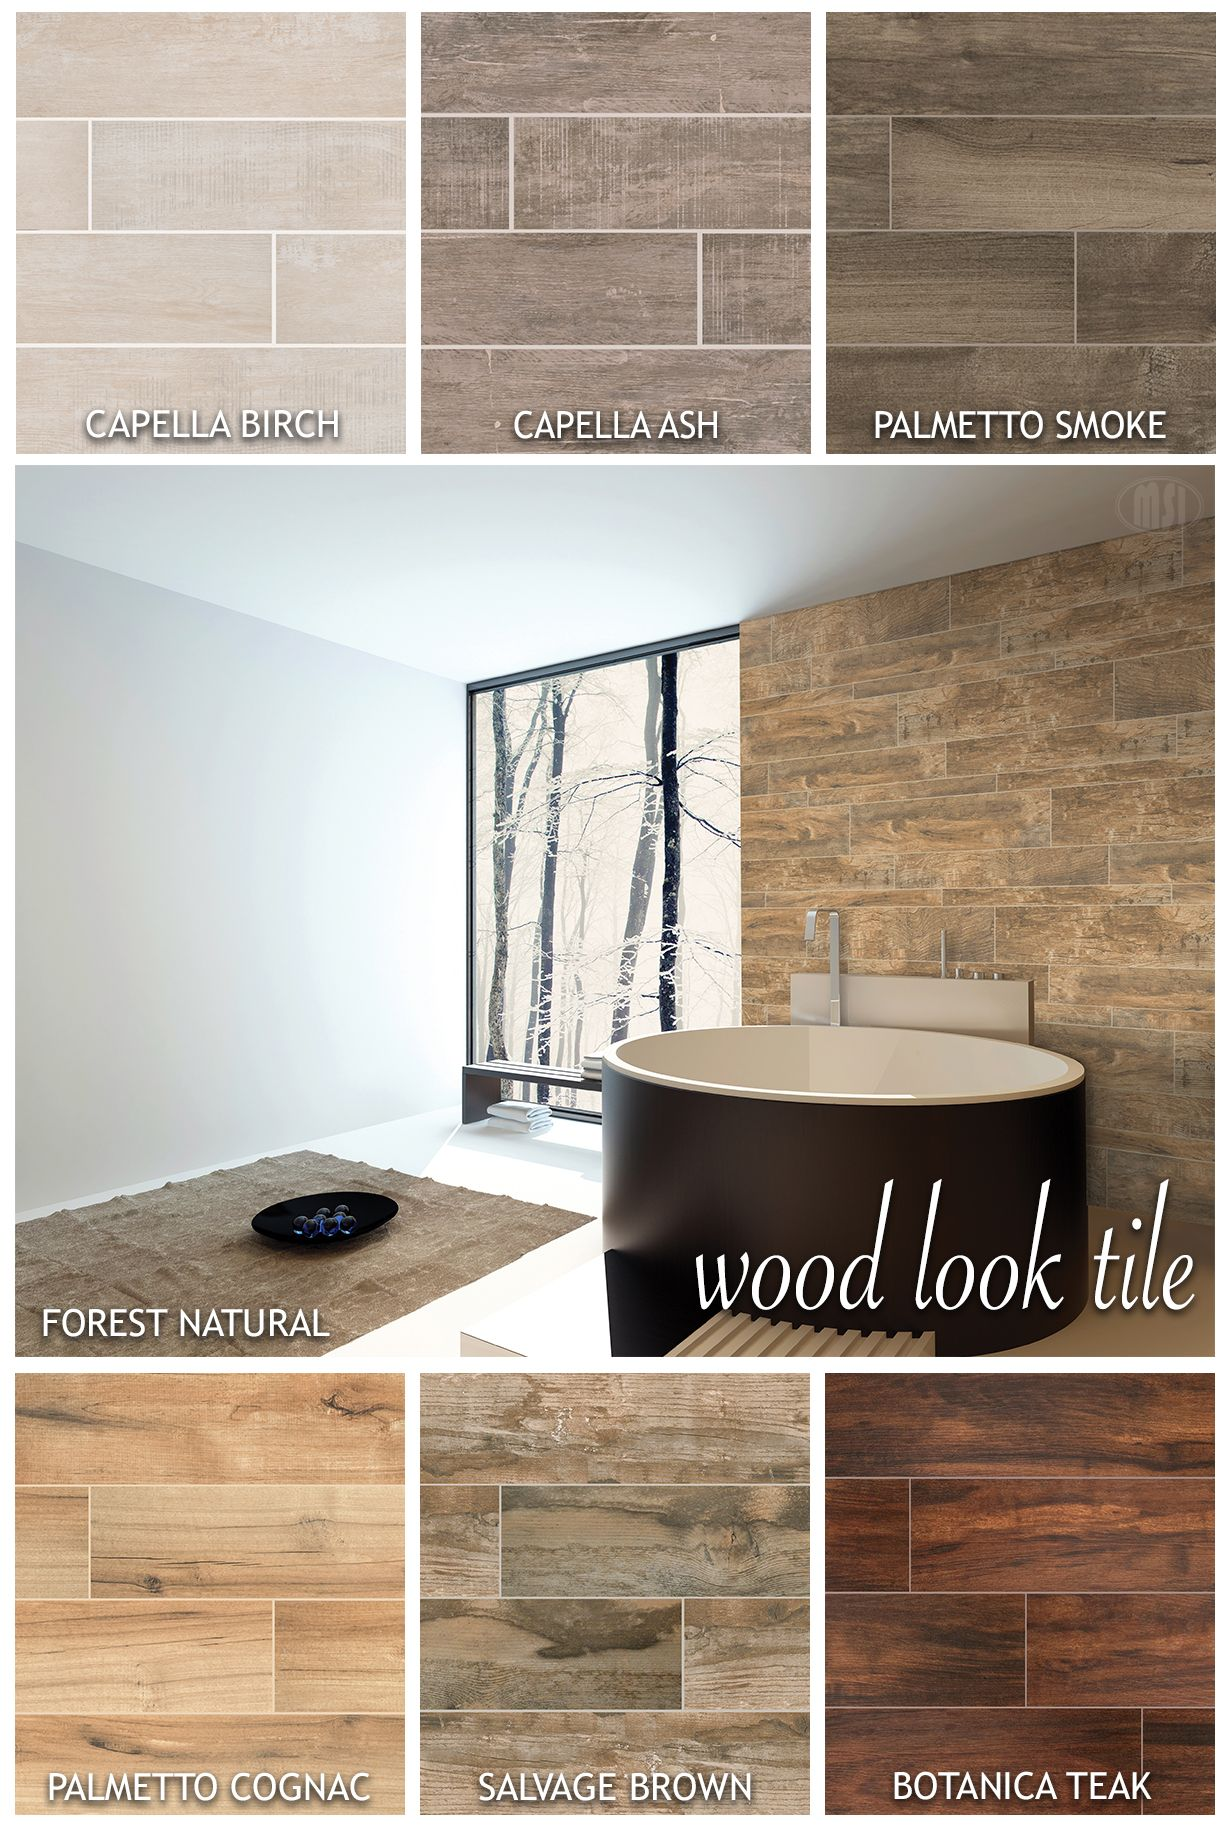 Move over hardwood Wood look tile is taking center stage These new